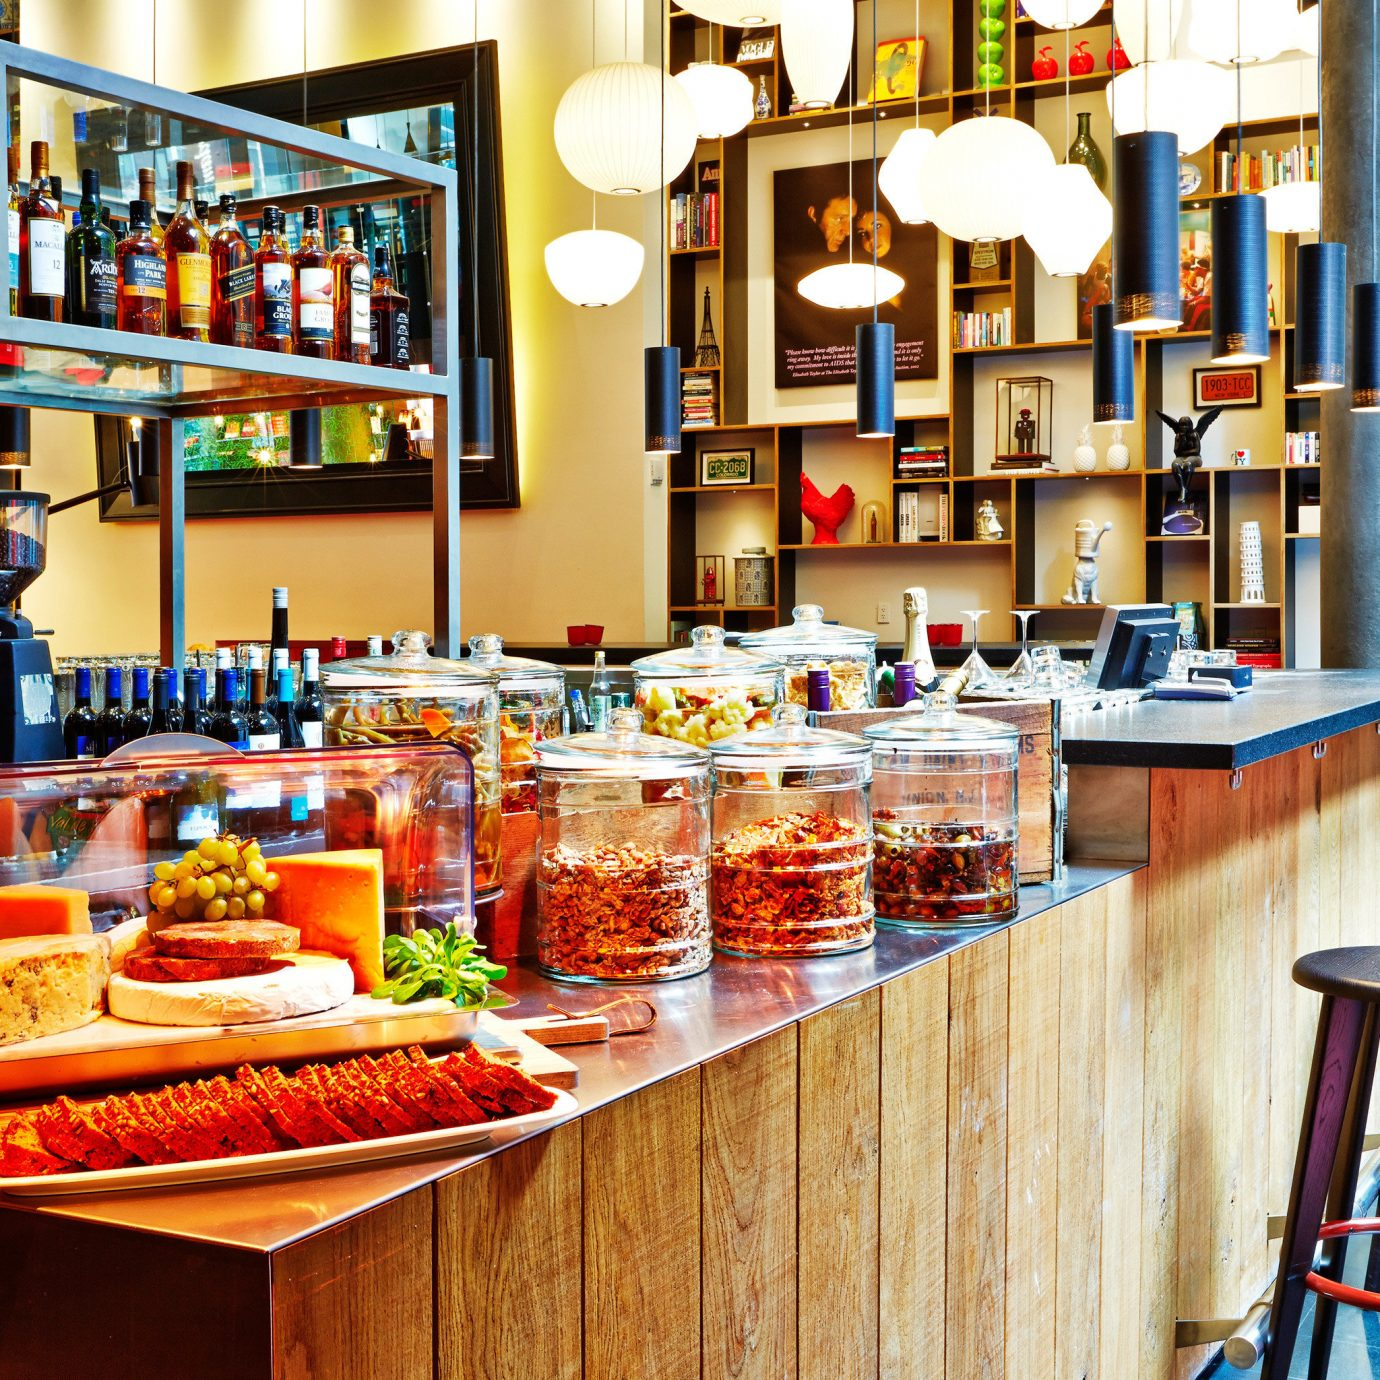 Budget City Dining Drink Eat Kitchen Modern grocery store Bar restaurant bookselling